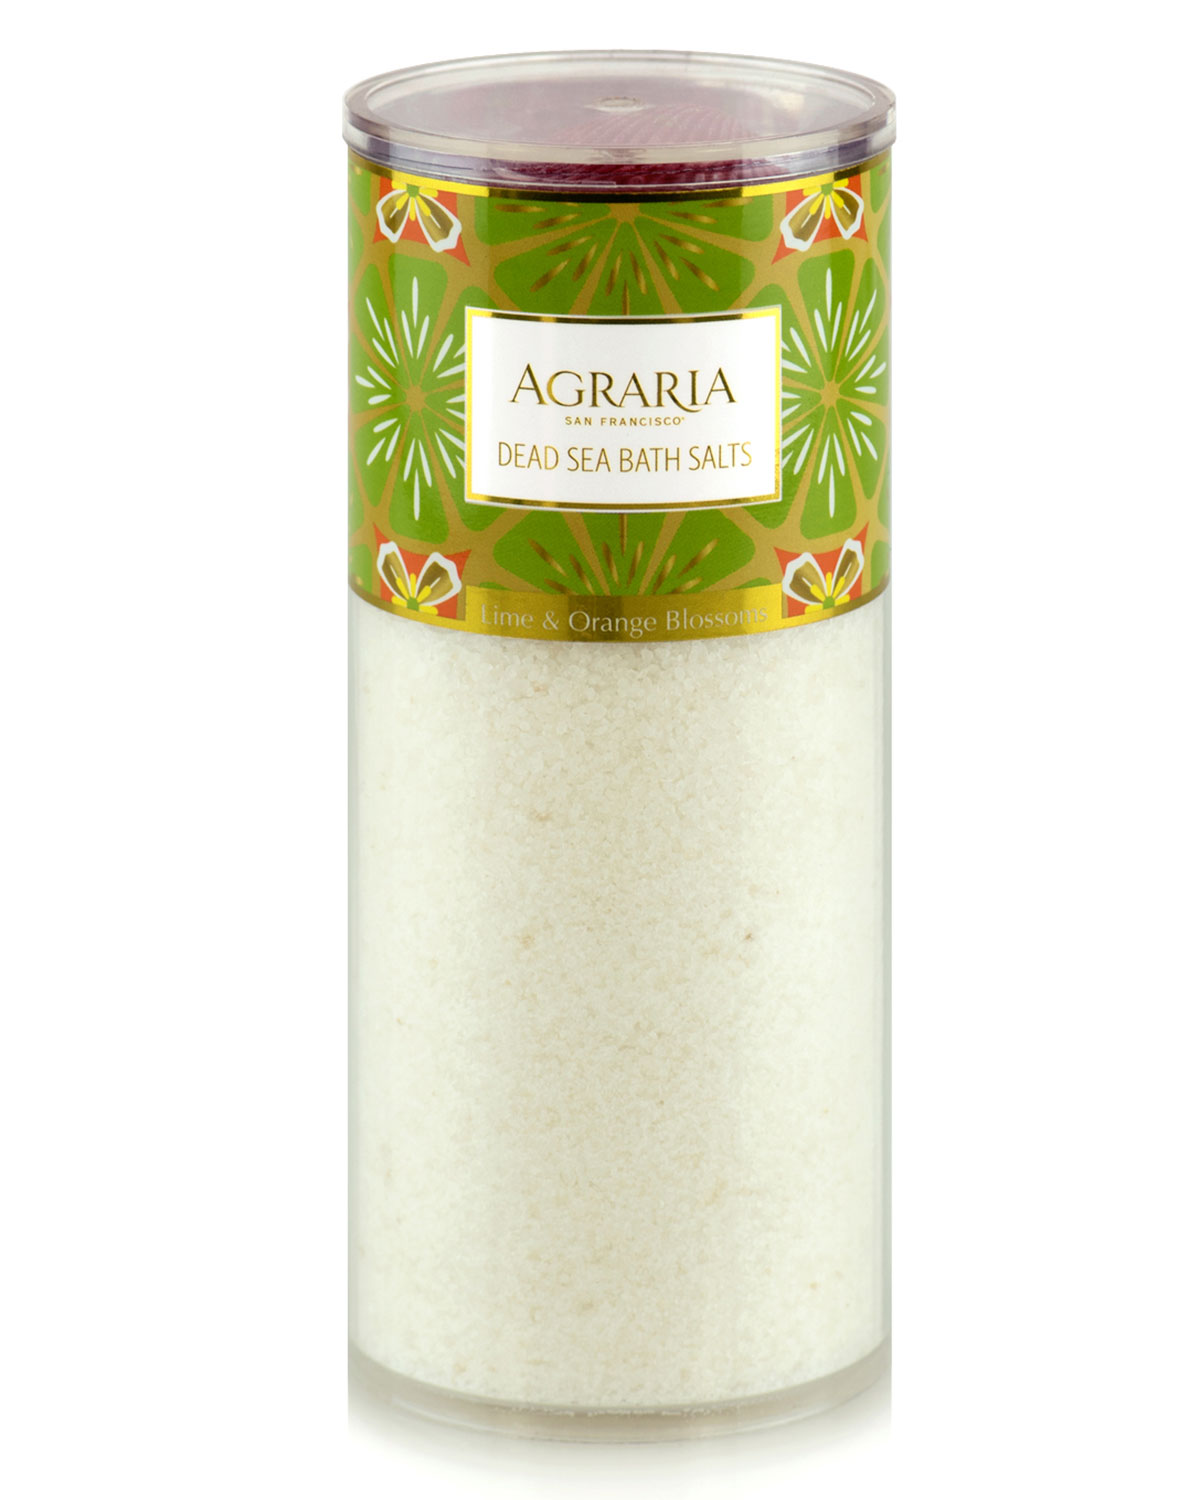 AGRARIA Lime & Orange Blossoms Bath Salt Tower, 16 Oz./ 454 G